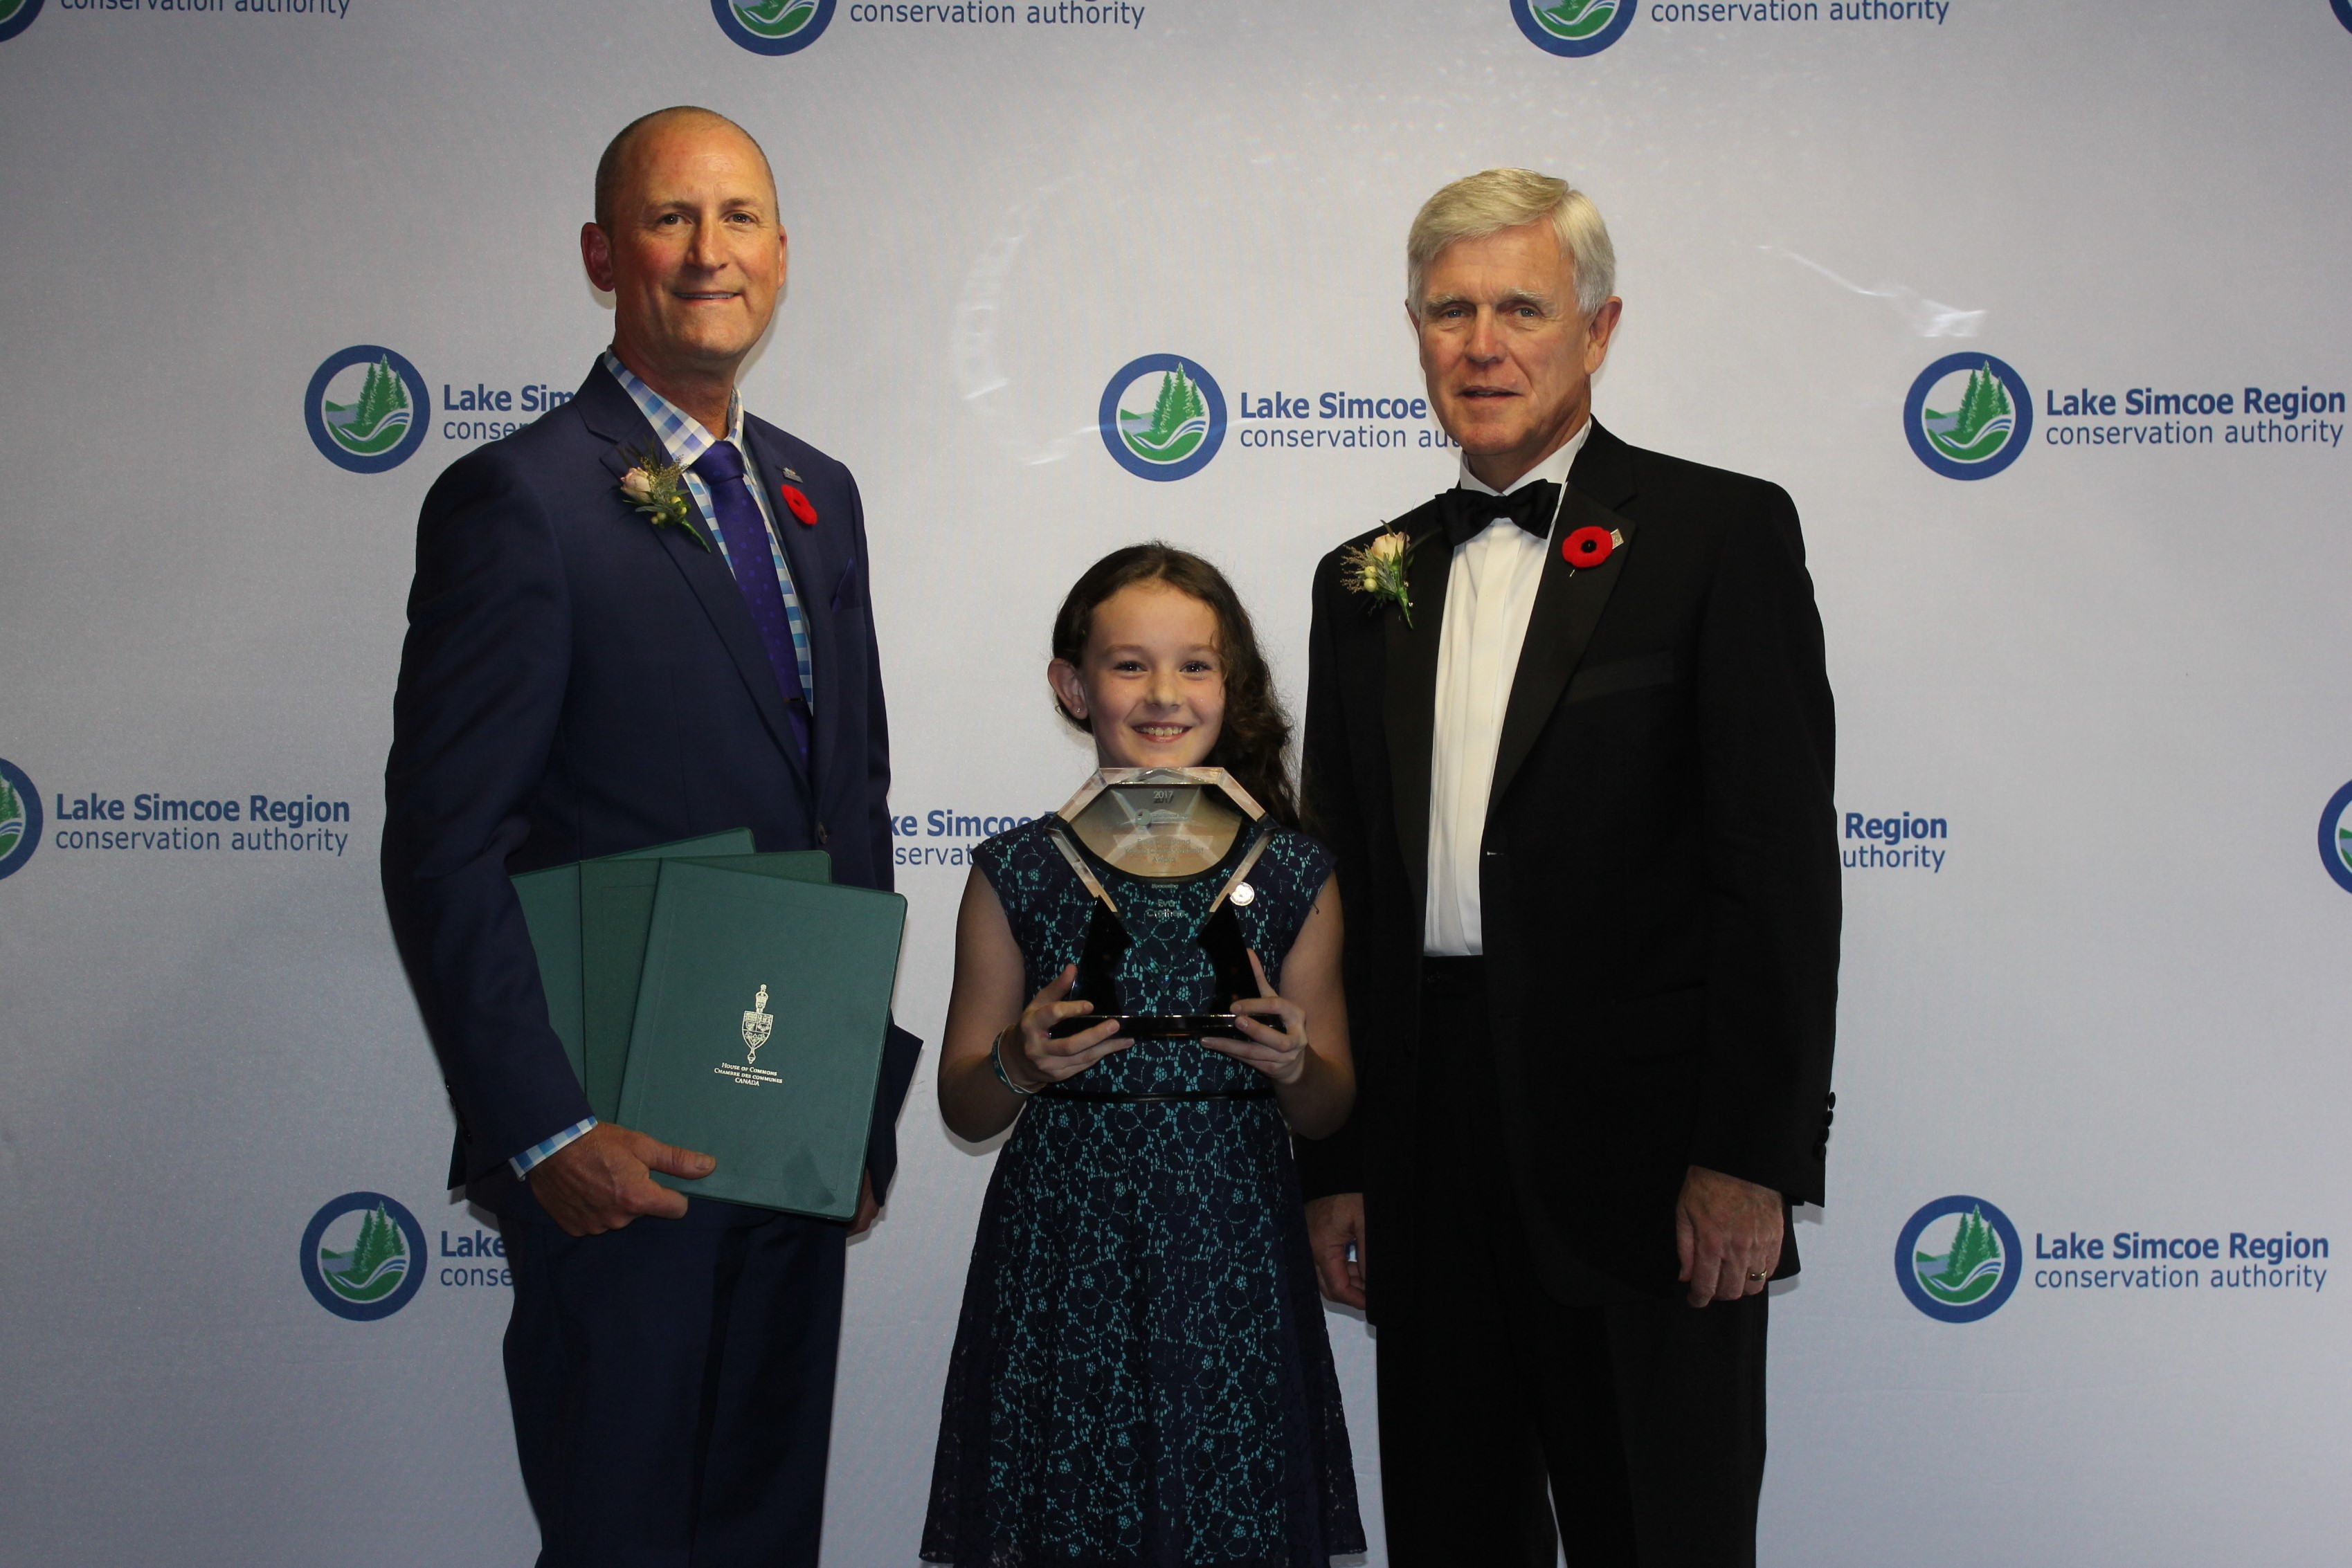 Ernie Crossland Young Conservationist Award